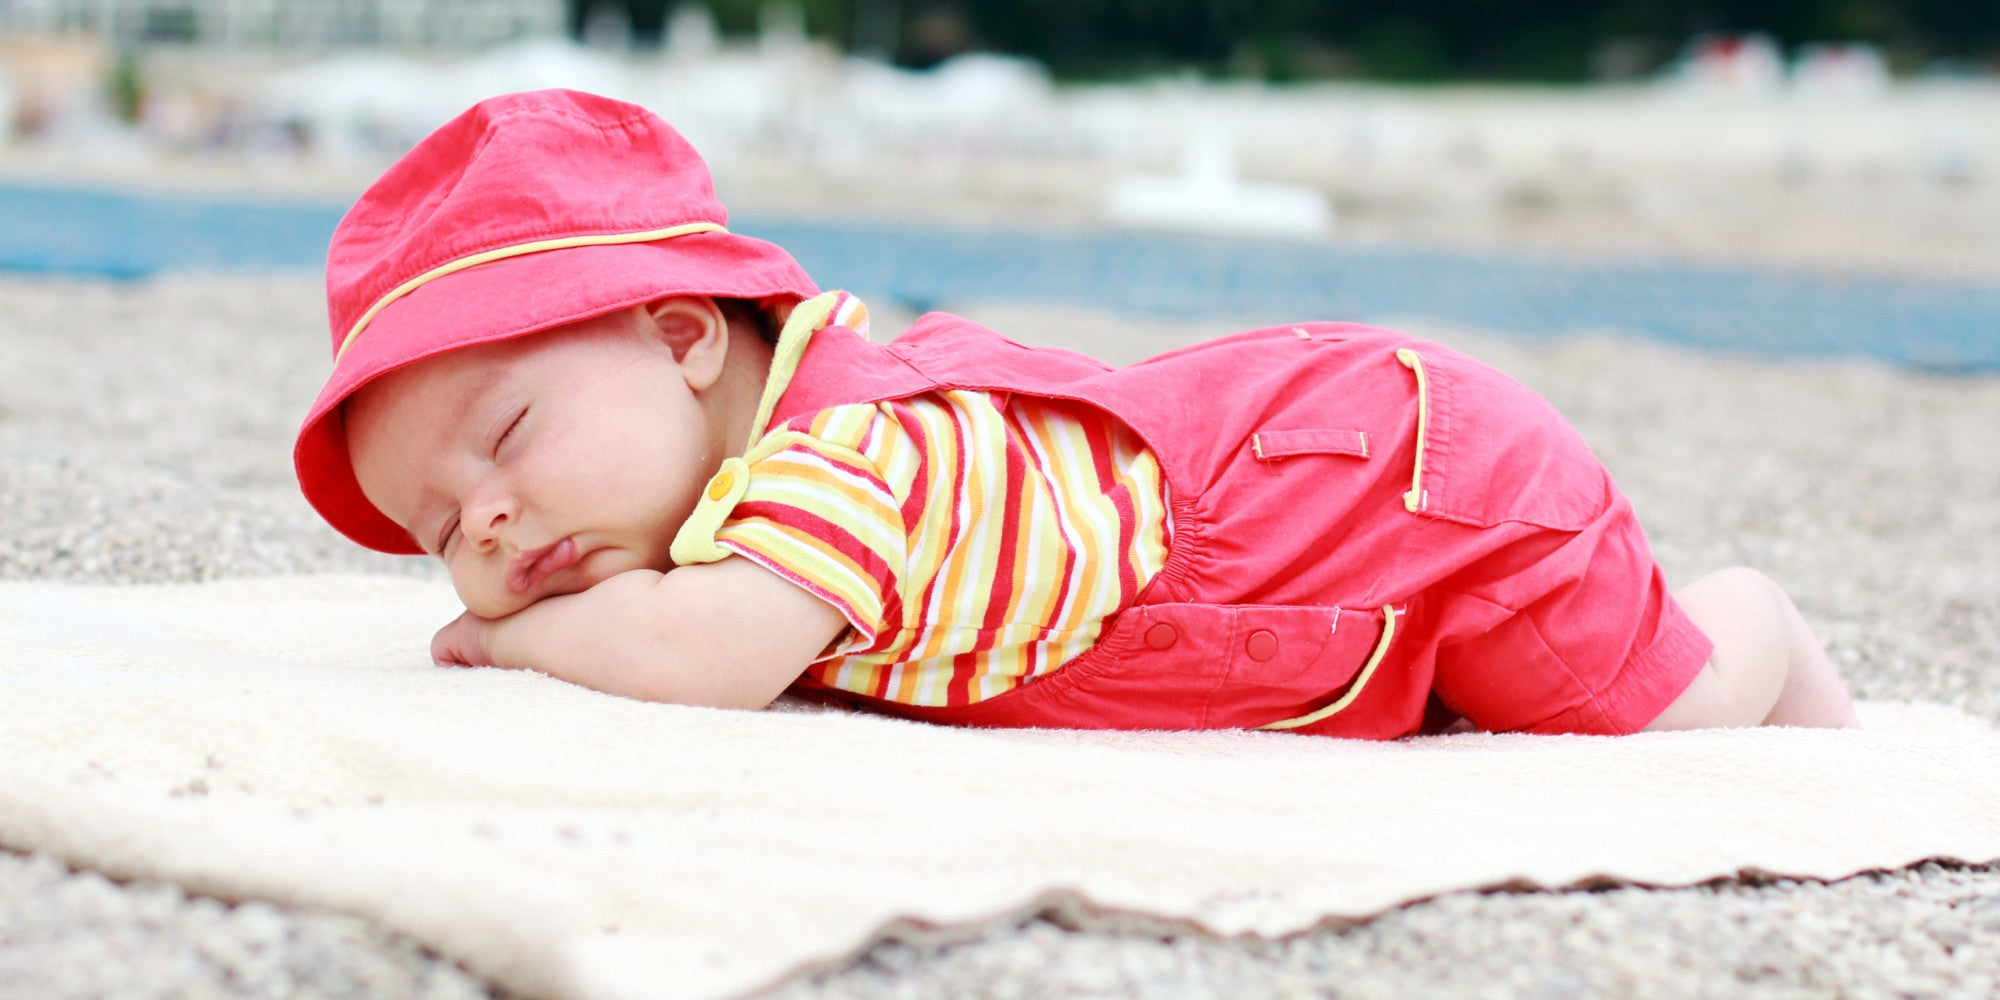 5 Beach Hacks For Babies How To Have A Care Free Day At The